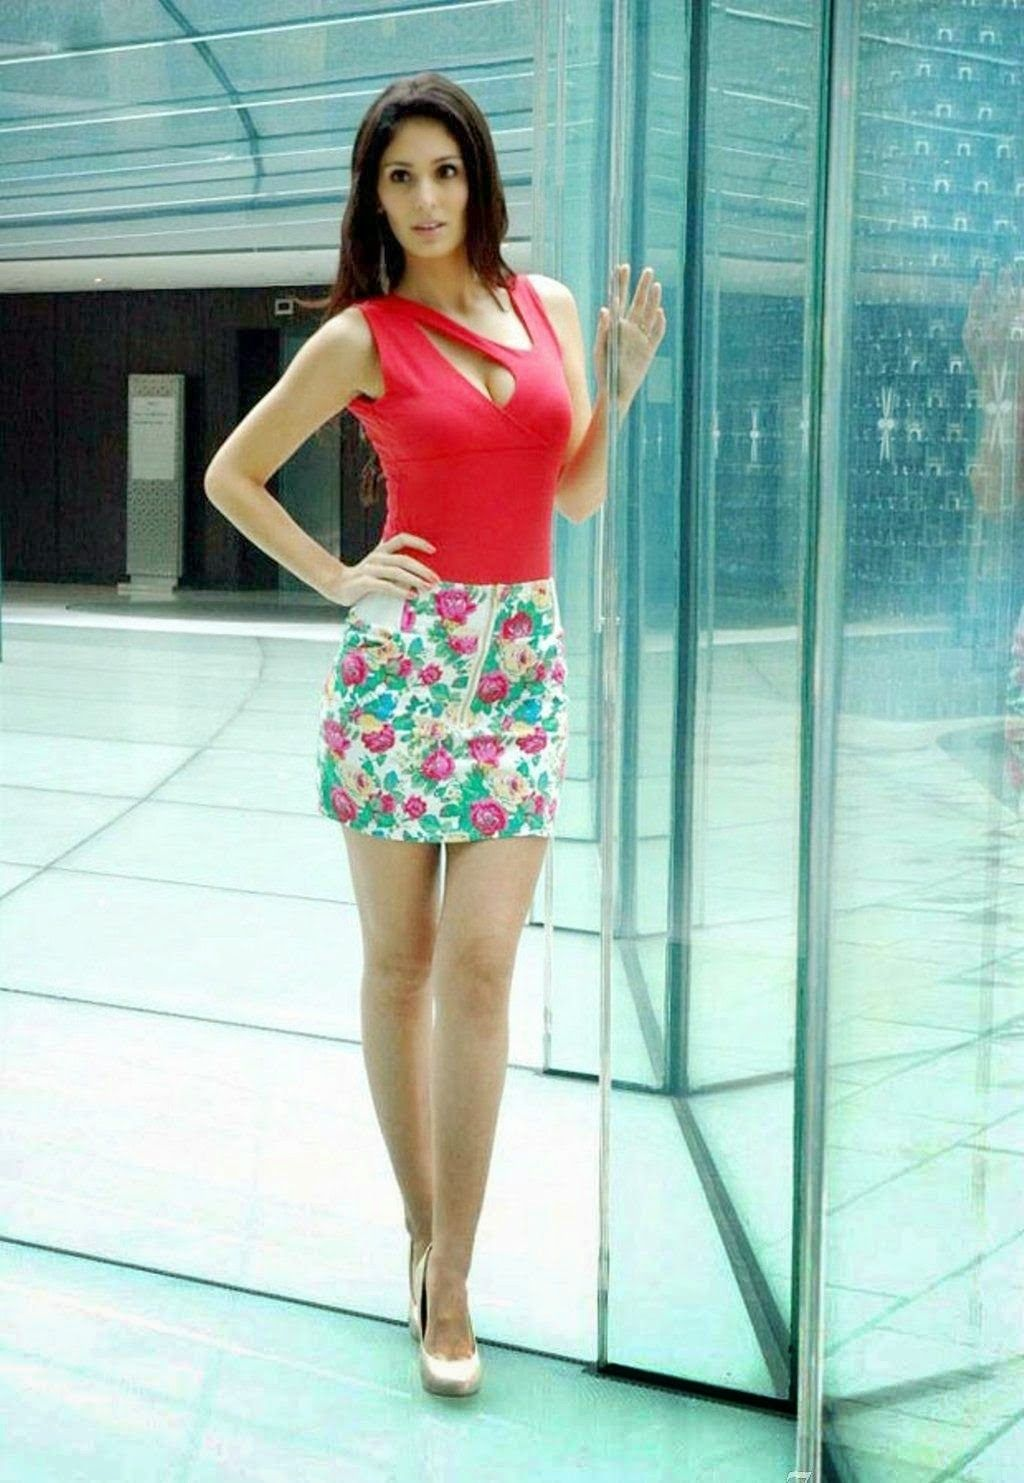 Bruna abdullah hot back bruna abdullah in short dress bruna abdullah - Bruna Abdullah Wearing A Floral Mid Thigh Skirt With Designer Tops For Girls 2015 Collection